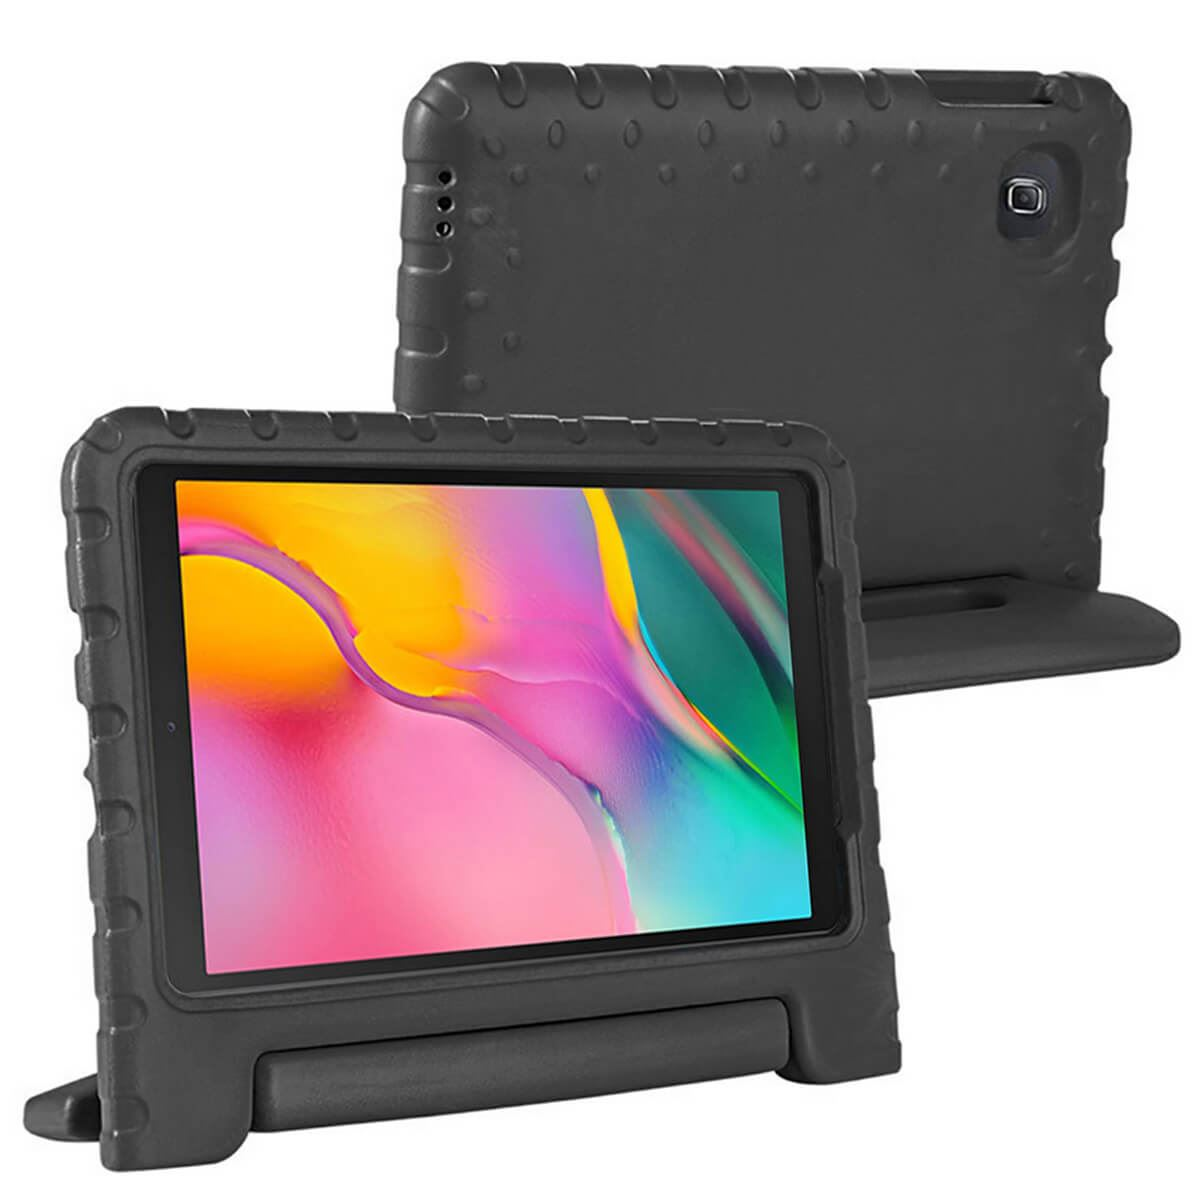 Shockproof-Protective-Case-Samsung-Galaxy-Tab-A-10-1-2016-Kids-Cover thumbnail 19